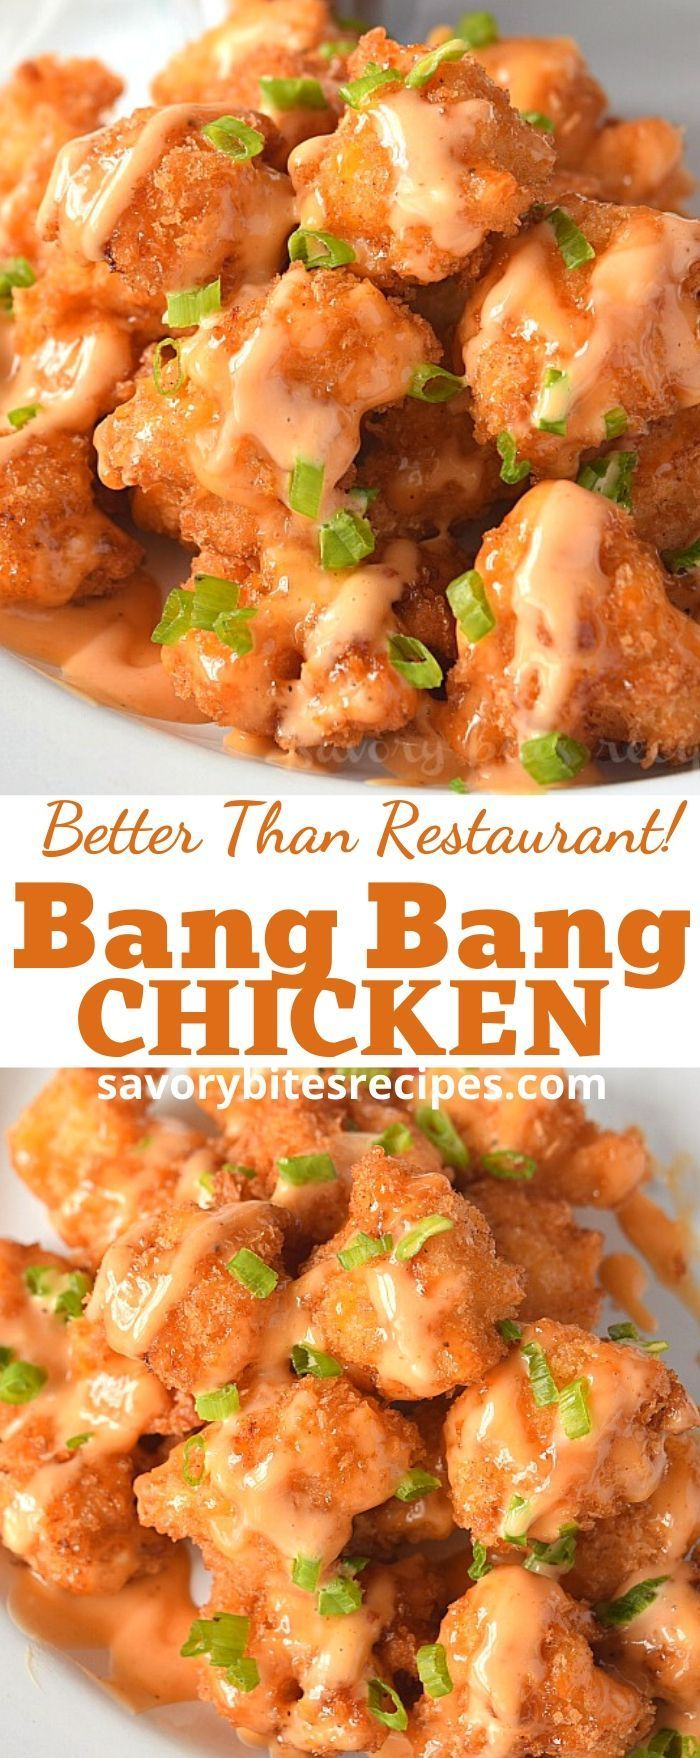 Try This Best Bang Bang Chicken Recipe